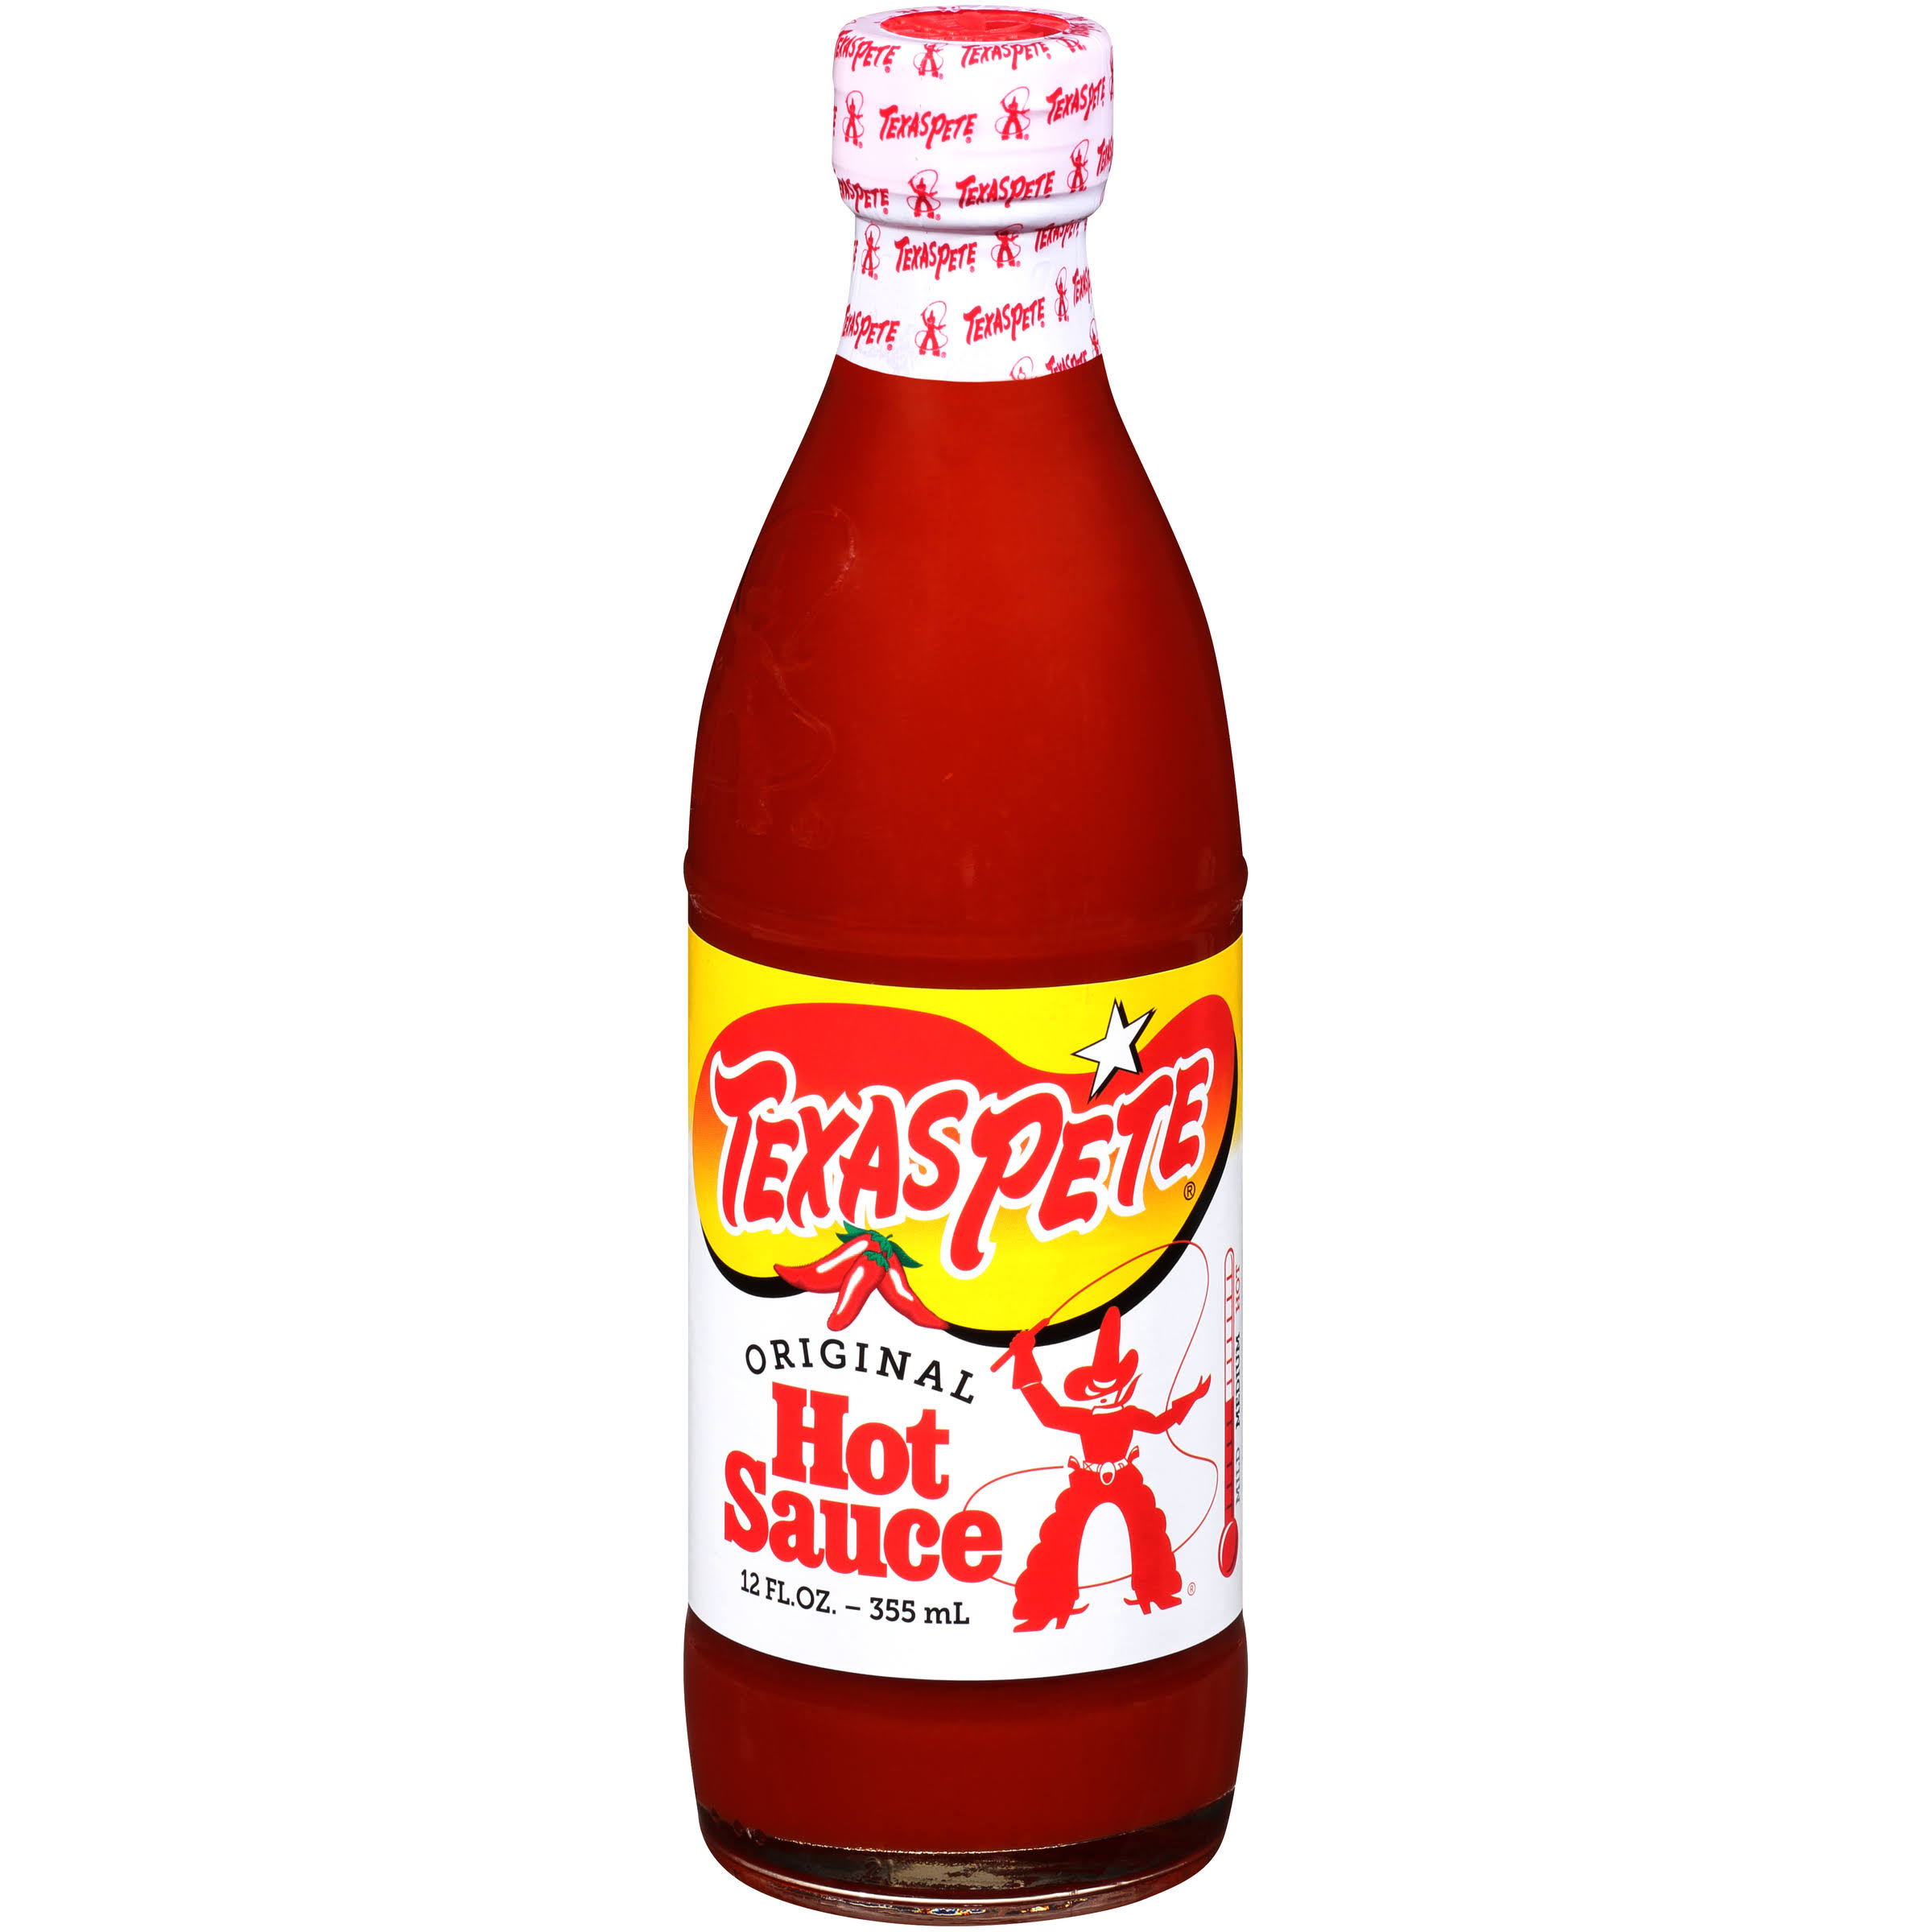 Texas Pete Original Hot Sauce - 12oz